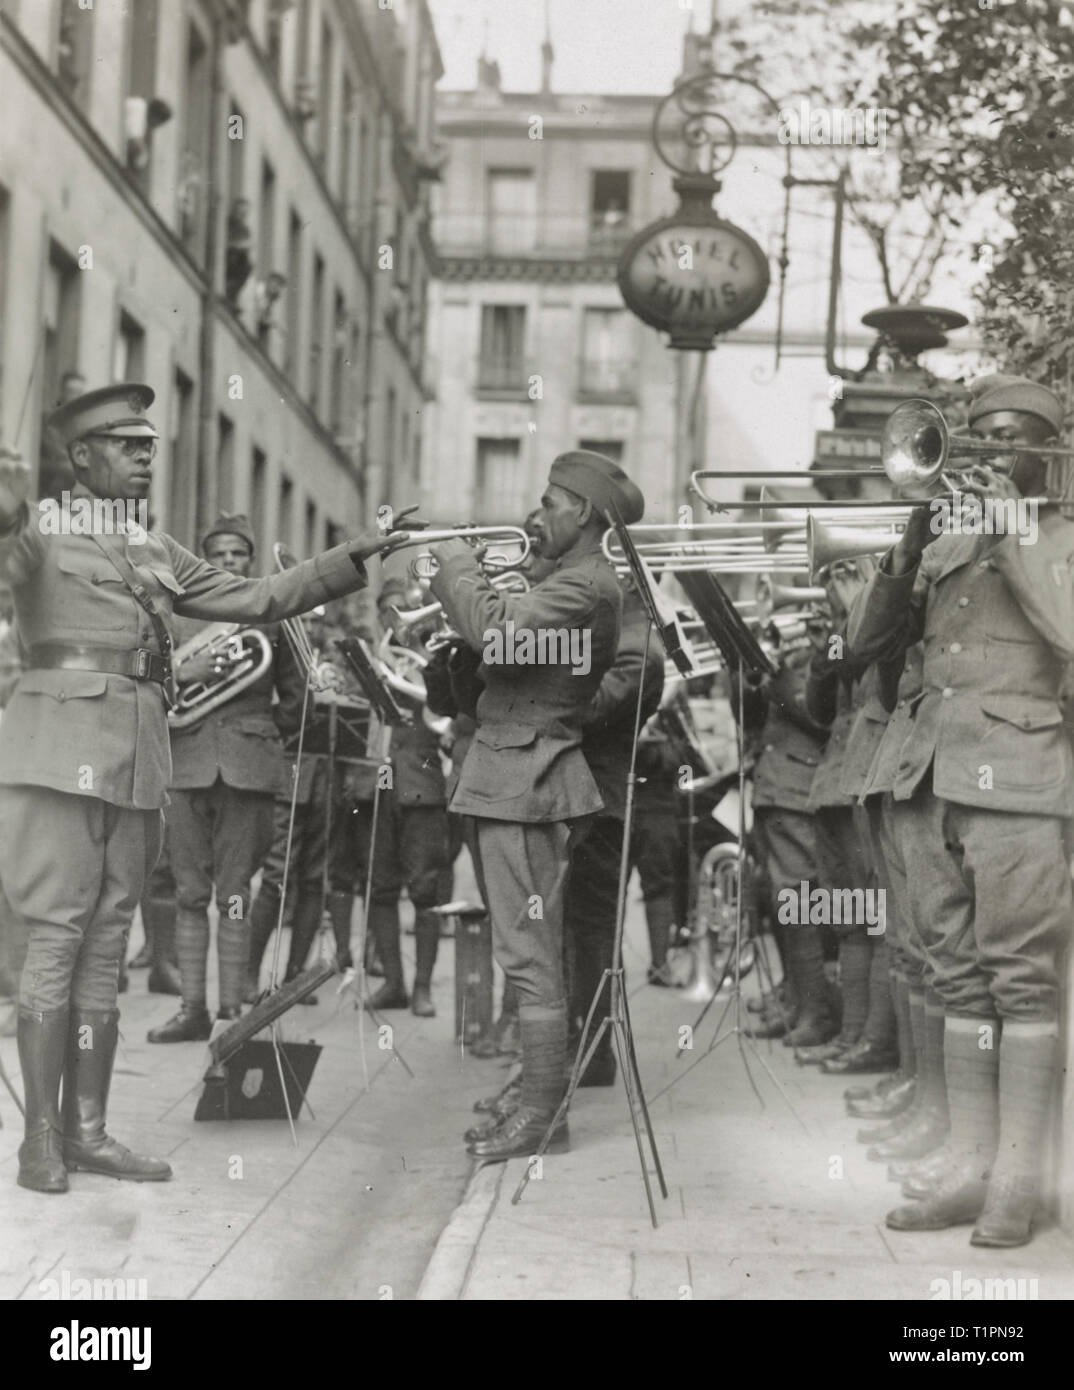 Genuine jazz for the yankee wounded In the courtyard of a Paris hospital for the American wounded, an American negro military band, led by Lt. James R. Europe, entertains the patients with real American jazz. Photograph shows African American musicians in the 369th Infantry Regiment band led by James Reese Europe. 1918 - Stock Image